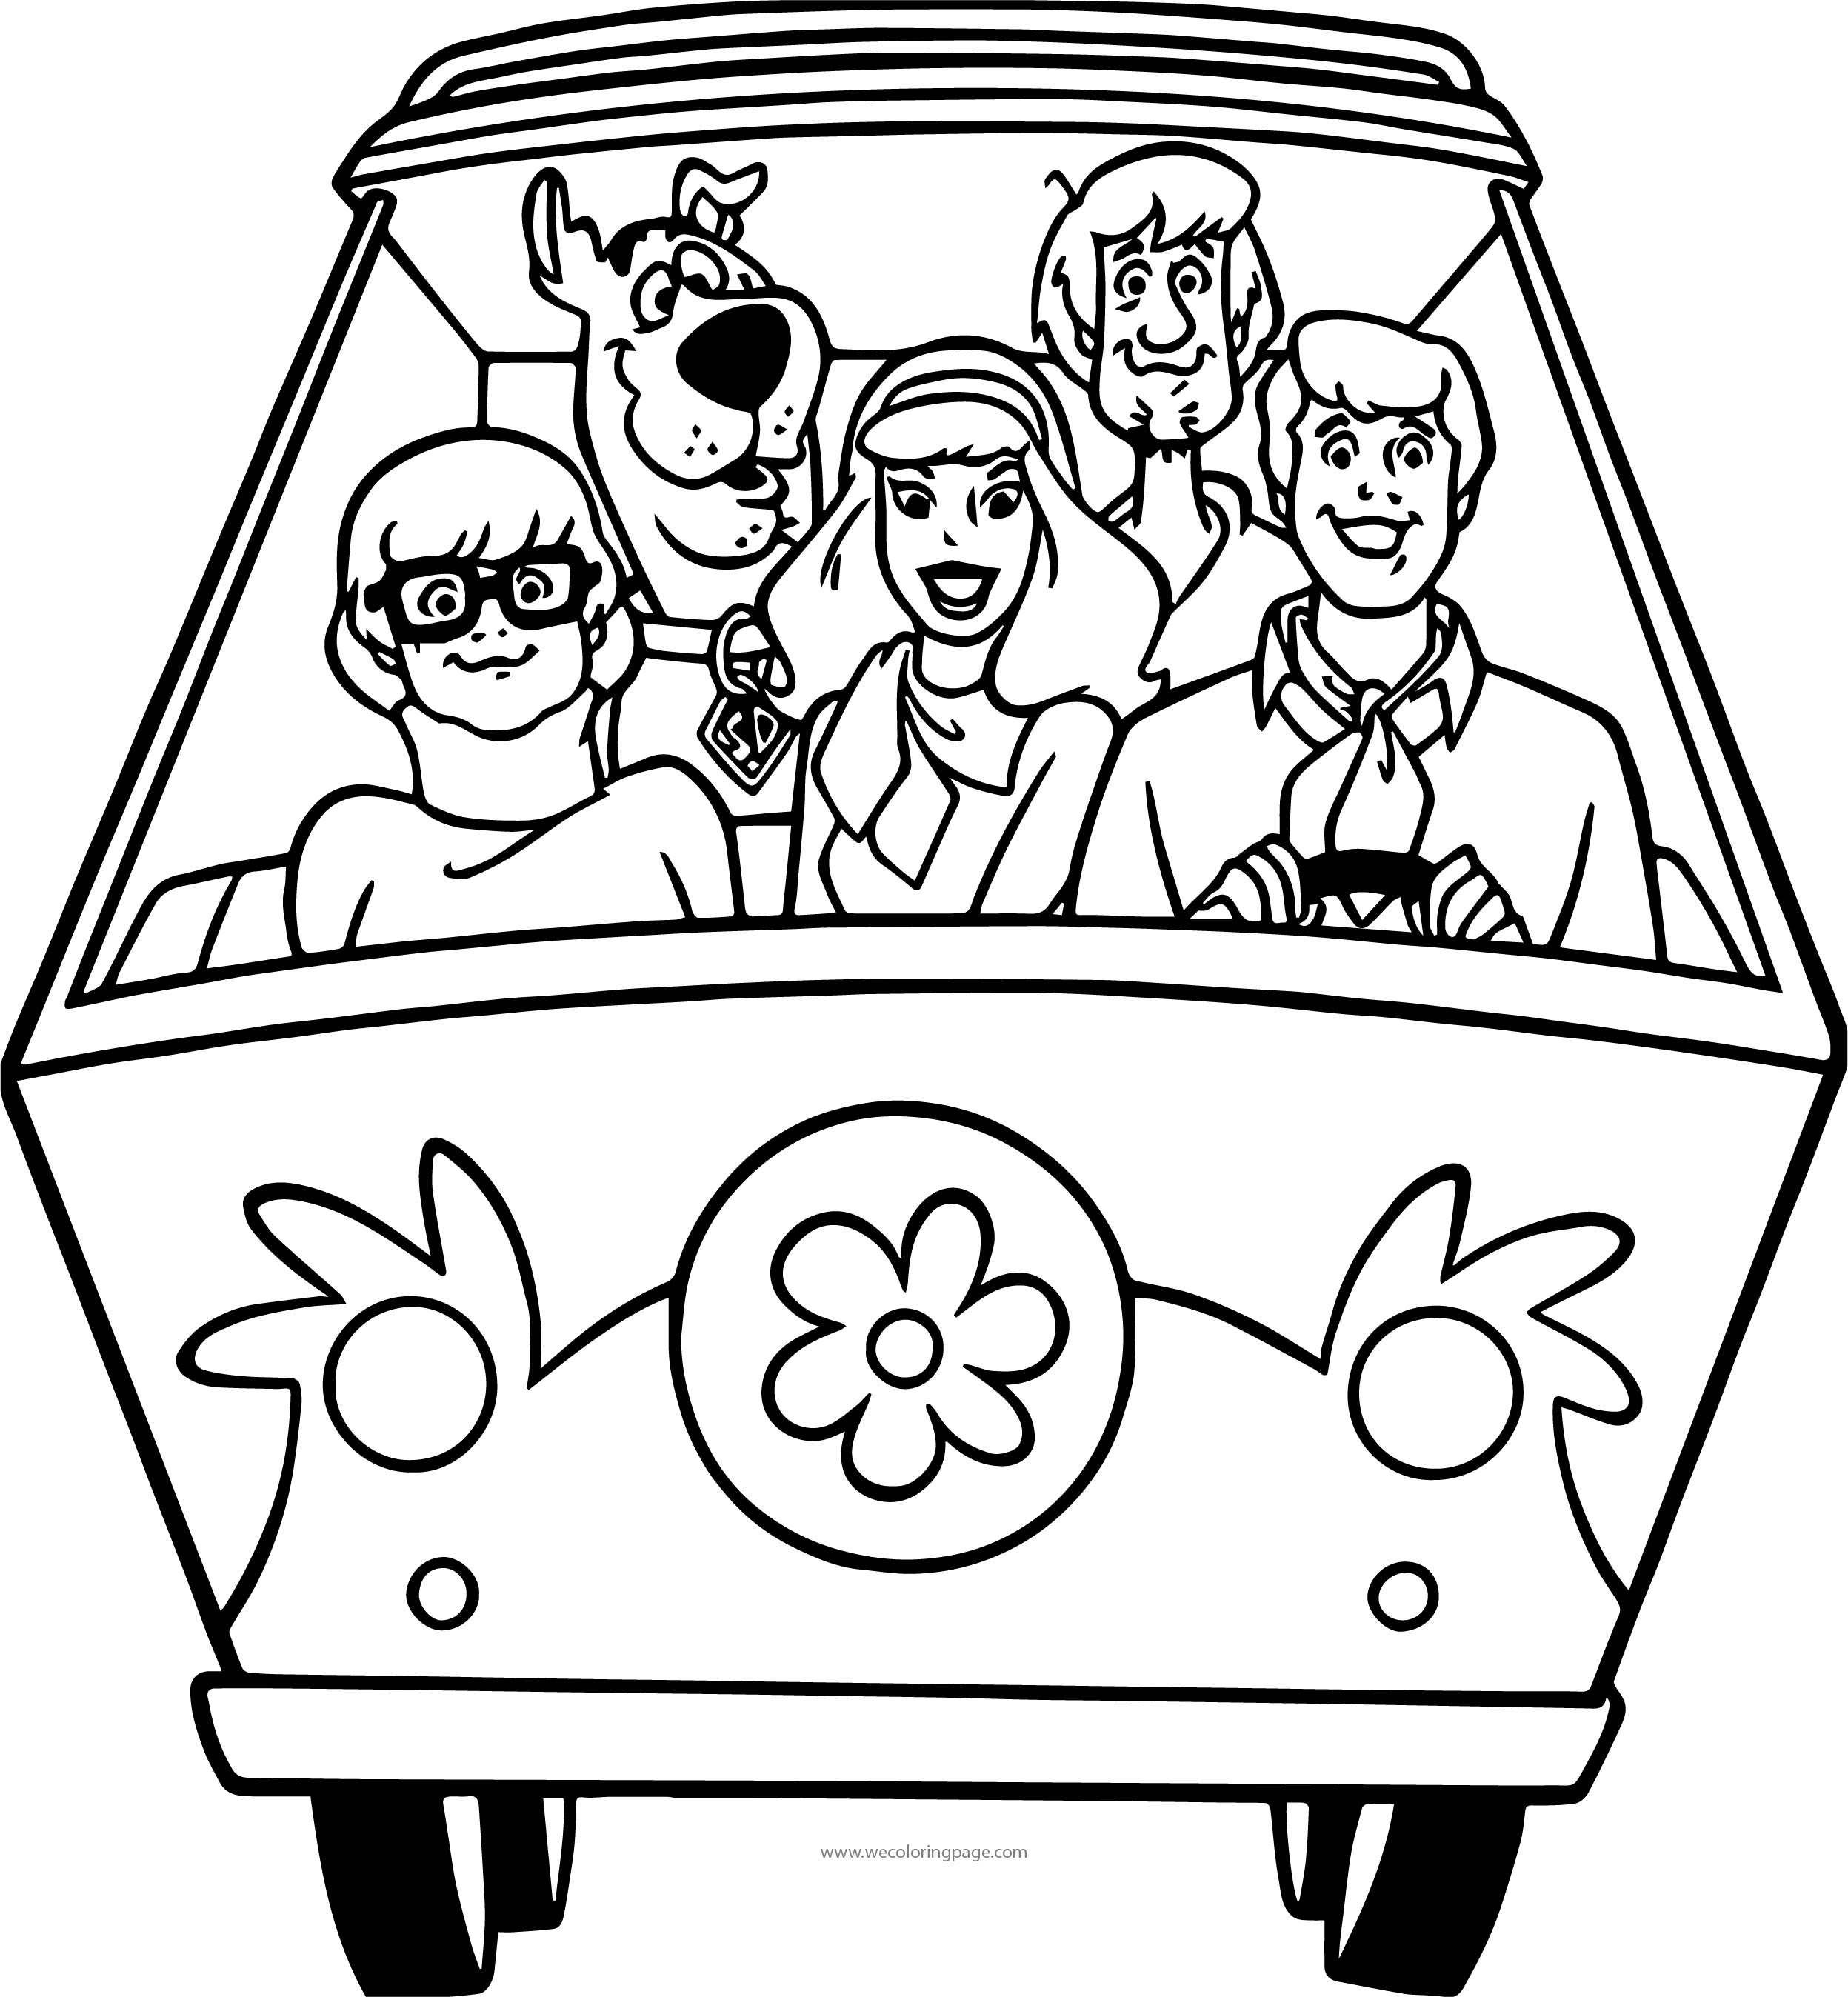 Scooby doo Car Front View Coloring Page